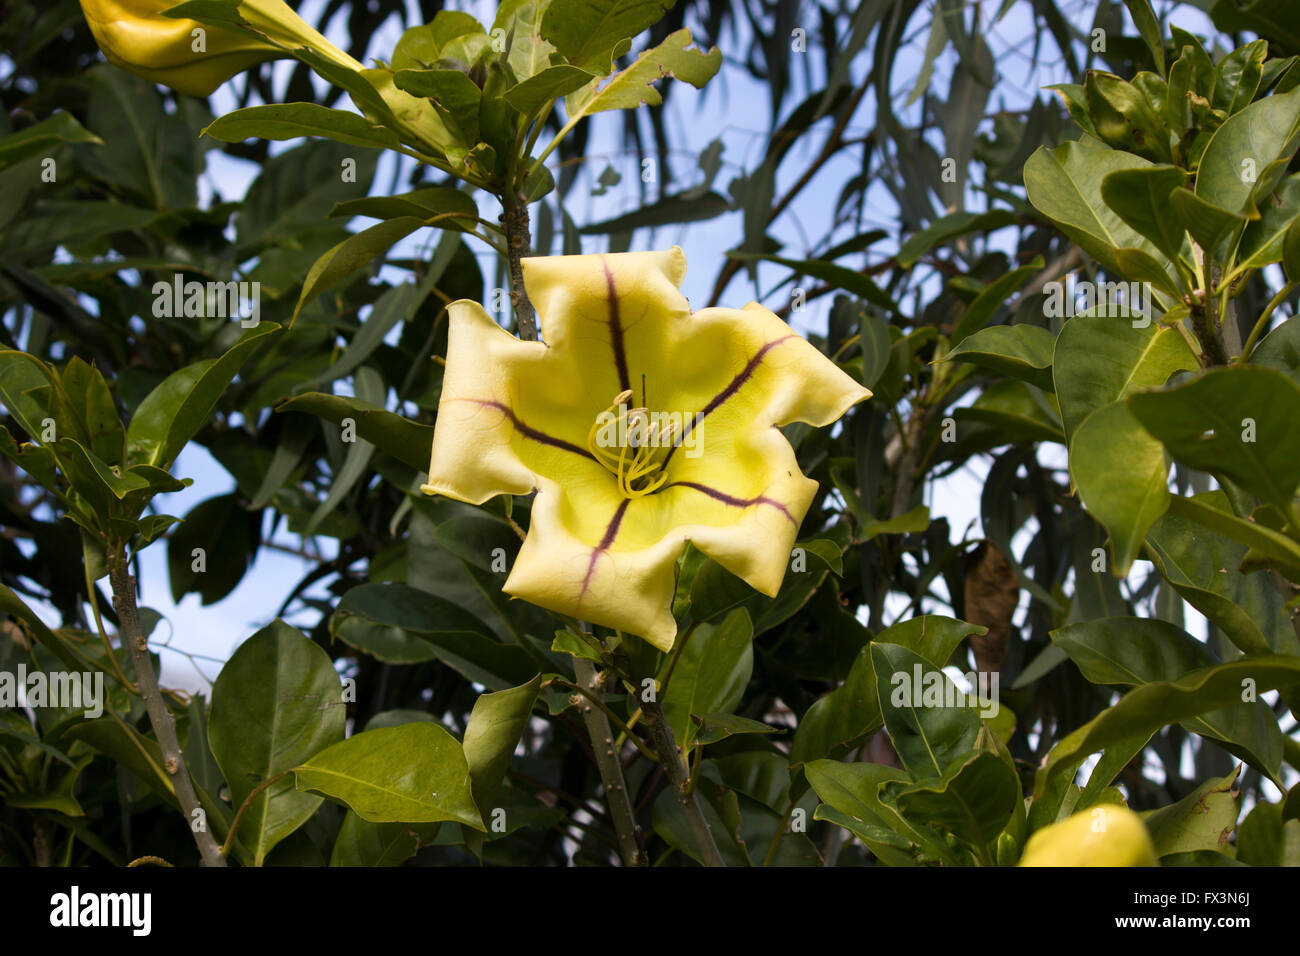 Cup shaped yellow flowers stock photos cup shaped yellow flowers large yellow flower of solandra maxima cup of gold vine golden chalice vine mightylinksfo